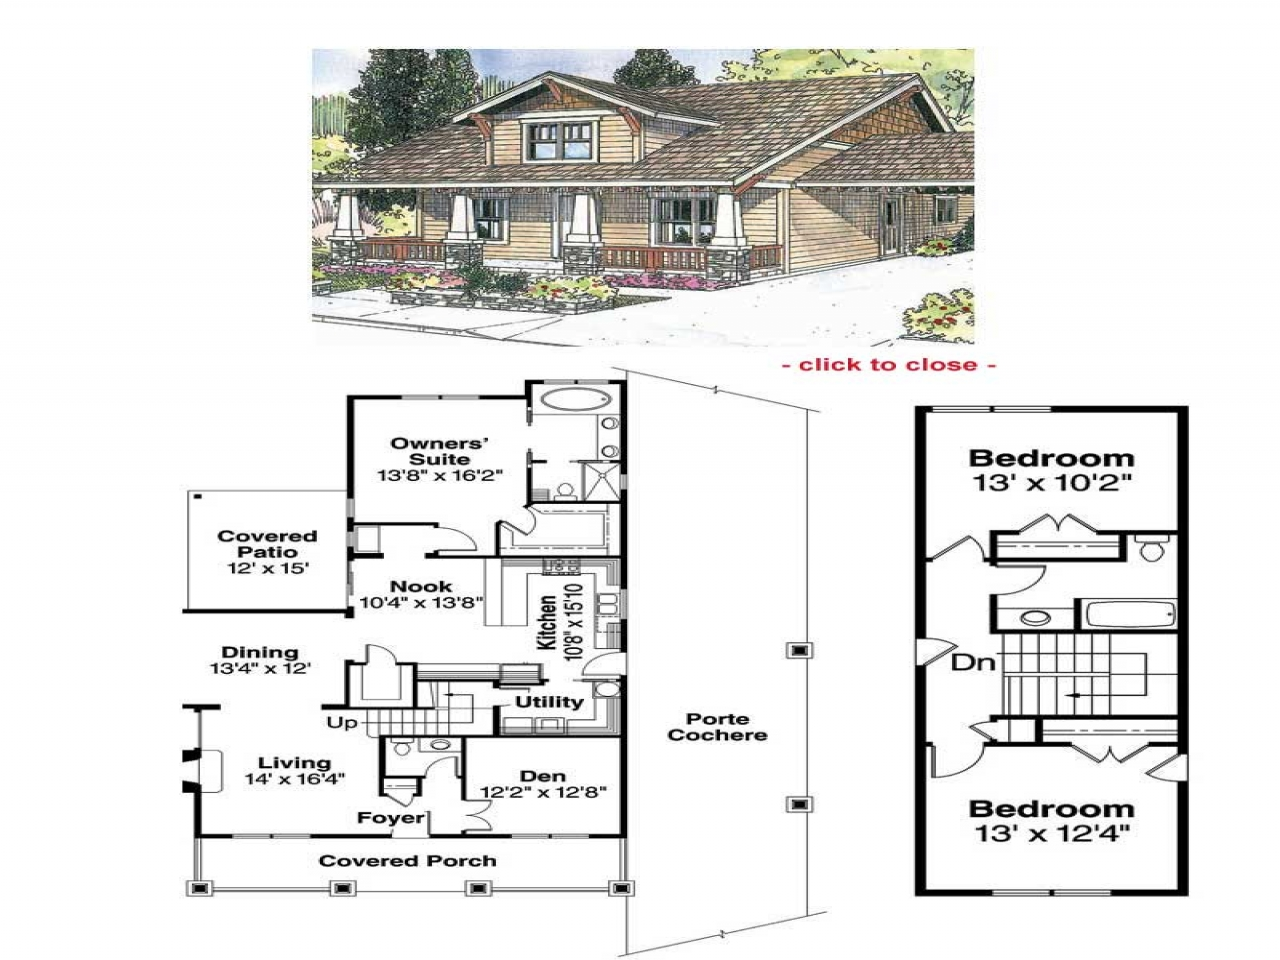 Craftsman bungalow plans find house plans vintage for Buy house plans